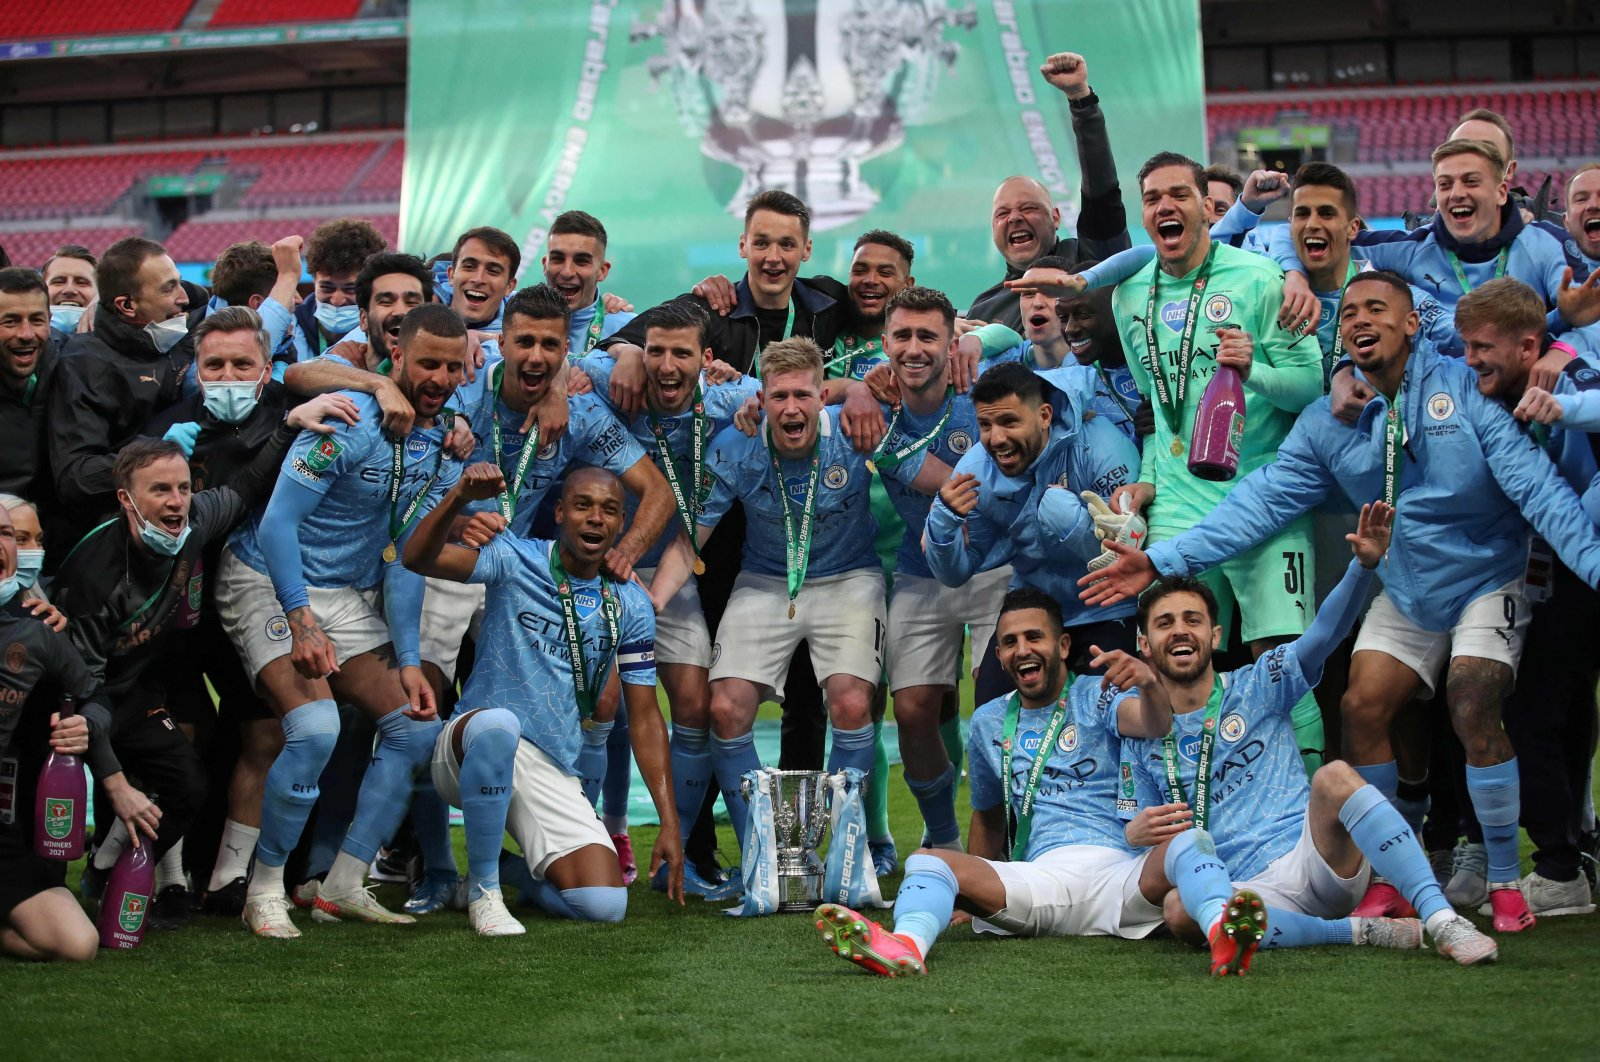 Manchester City players celebrate with the trophy after winning the English League Cup final football match 1-0 against Tottenham Hotspur at Wembley Stadium, northwest London, the U.K., April 25, 2021. (AFP Photo)